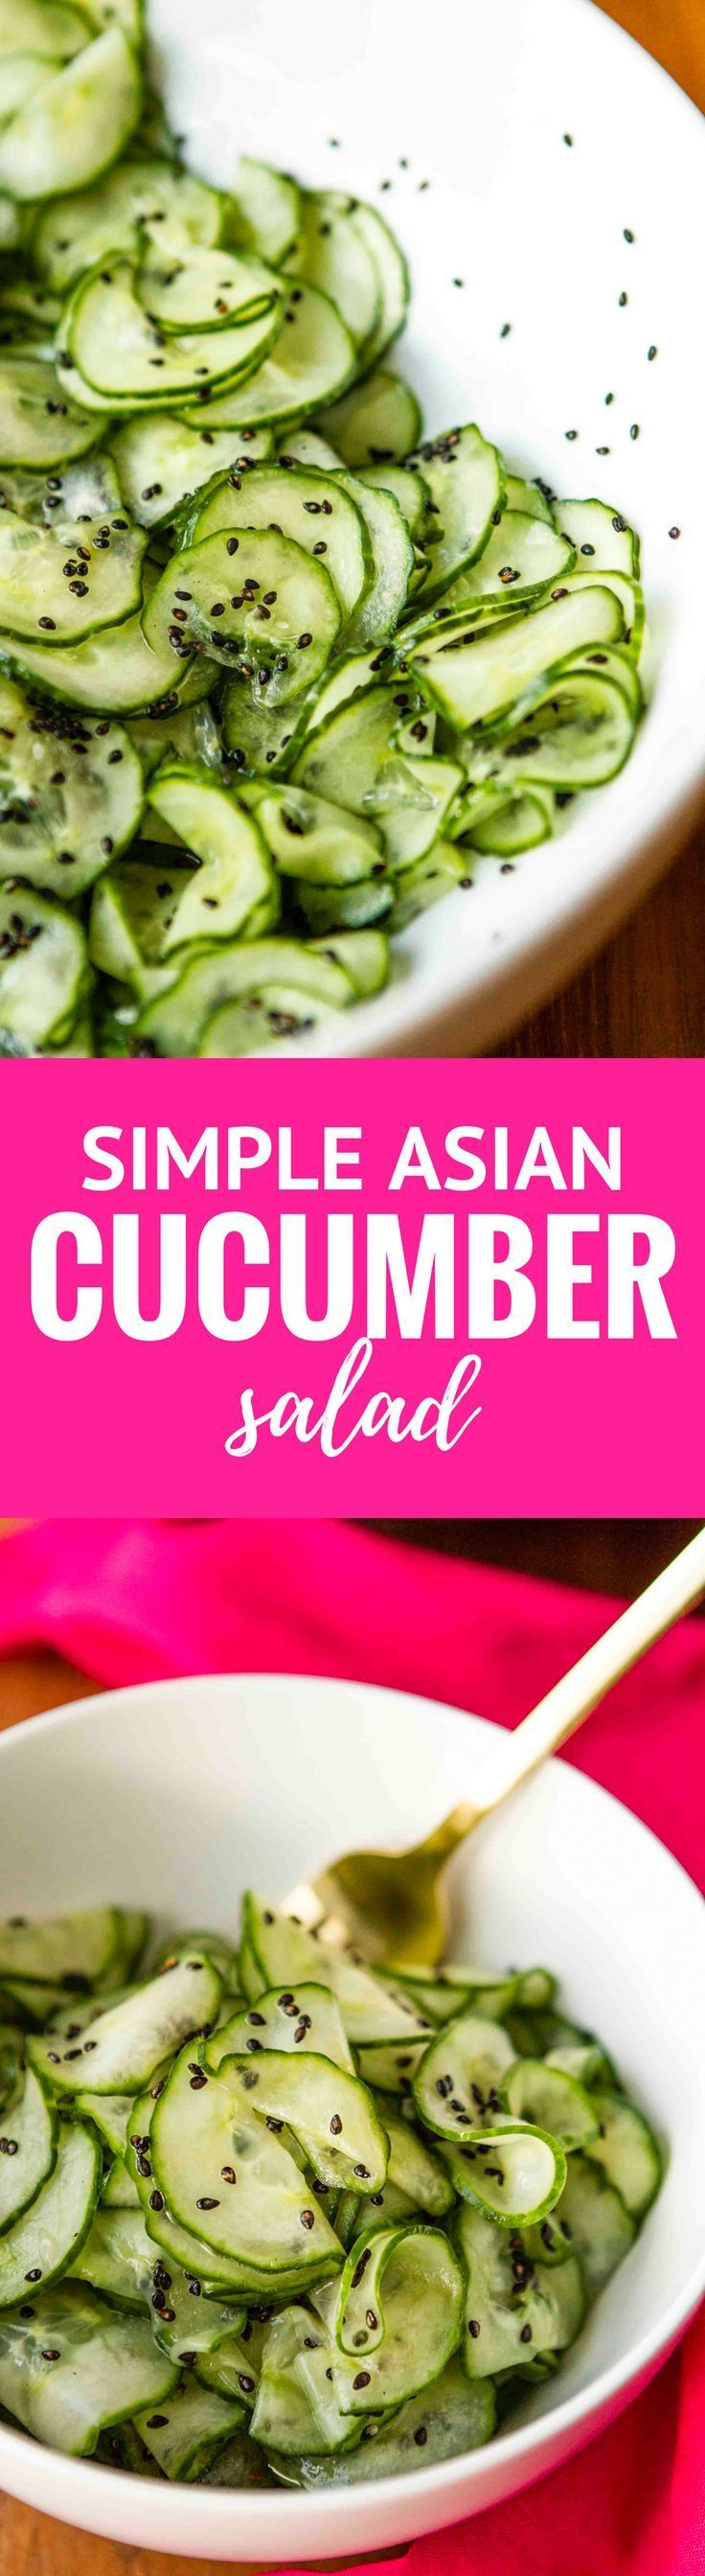 Asian Cucumber Salad -- this simple cucumber salad recipe is super light and refreshing, perfect for hot summer days… Rice vinegar and dark sesame oil, along with toasted sesame seeds give it a delicious Asian flair! | http://unsophisticook.com